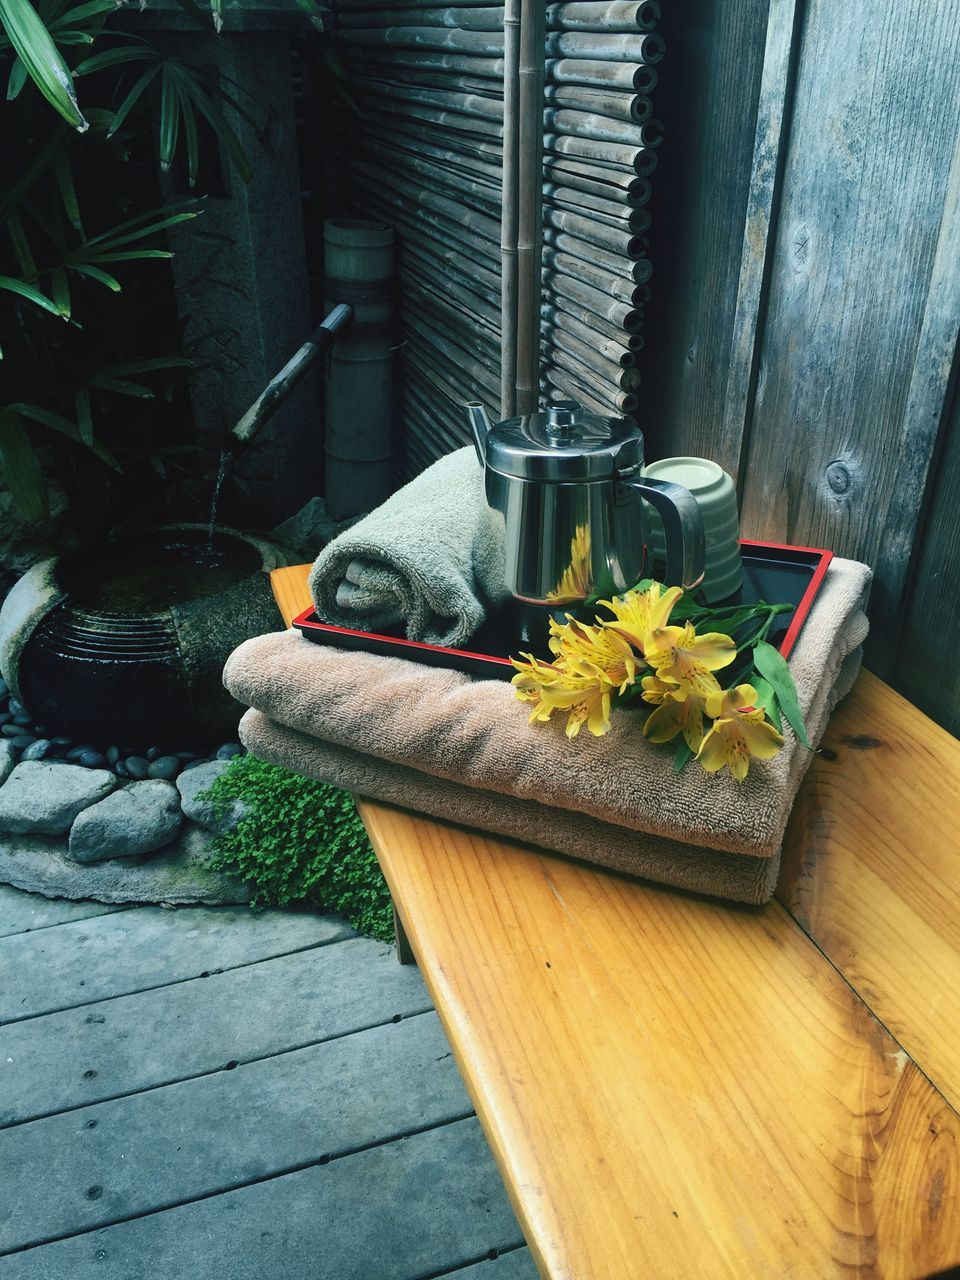 Close-Up Of Towels With Flowers And Kettle On Wood